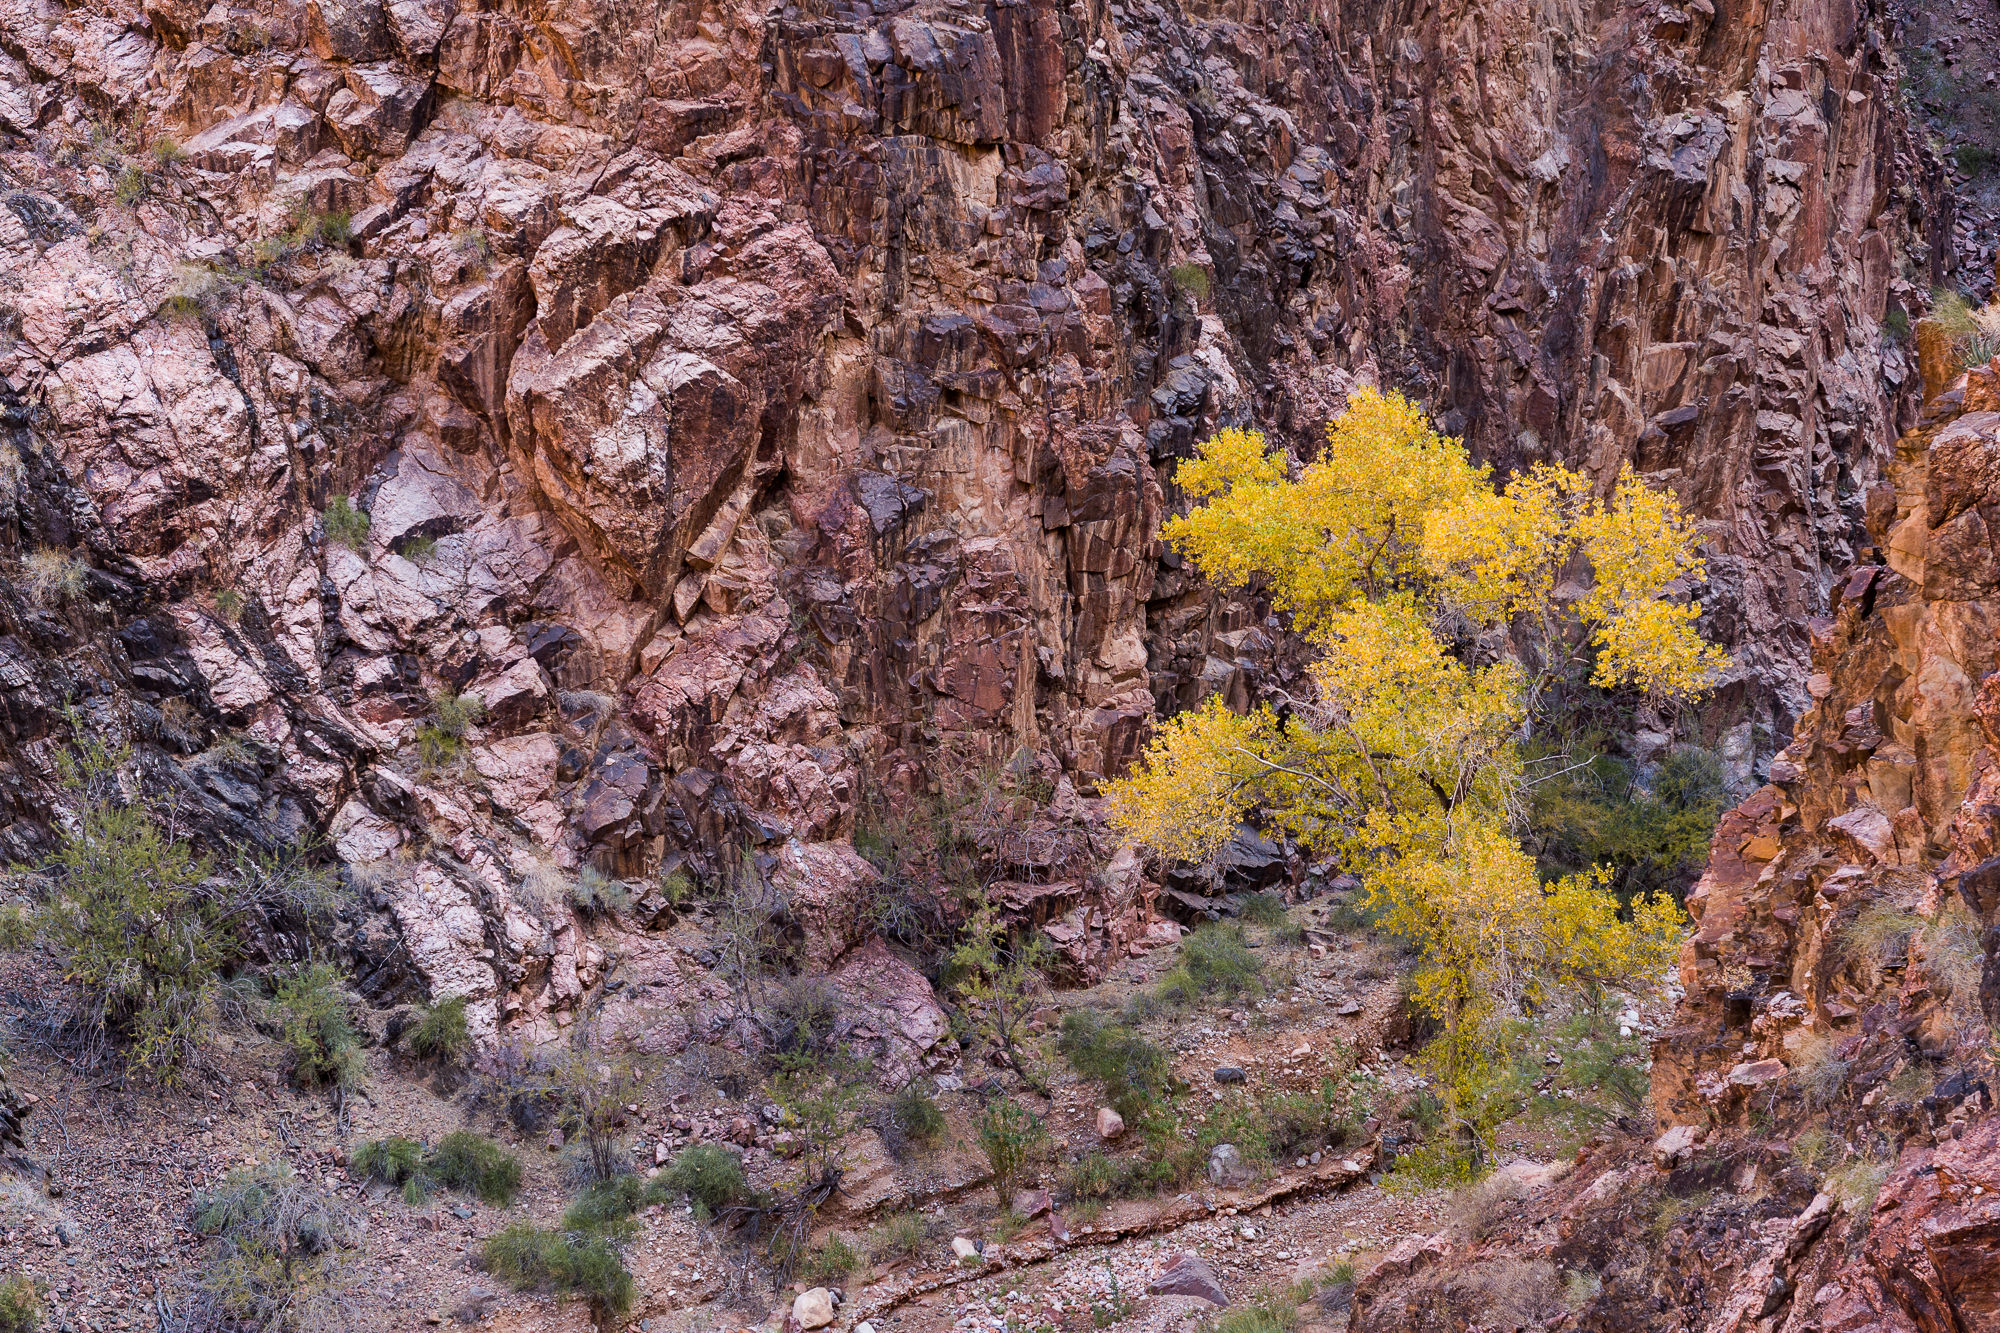 One of the colorful cottonwoods tucked in a canyon